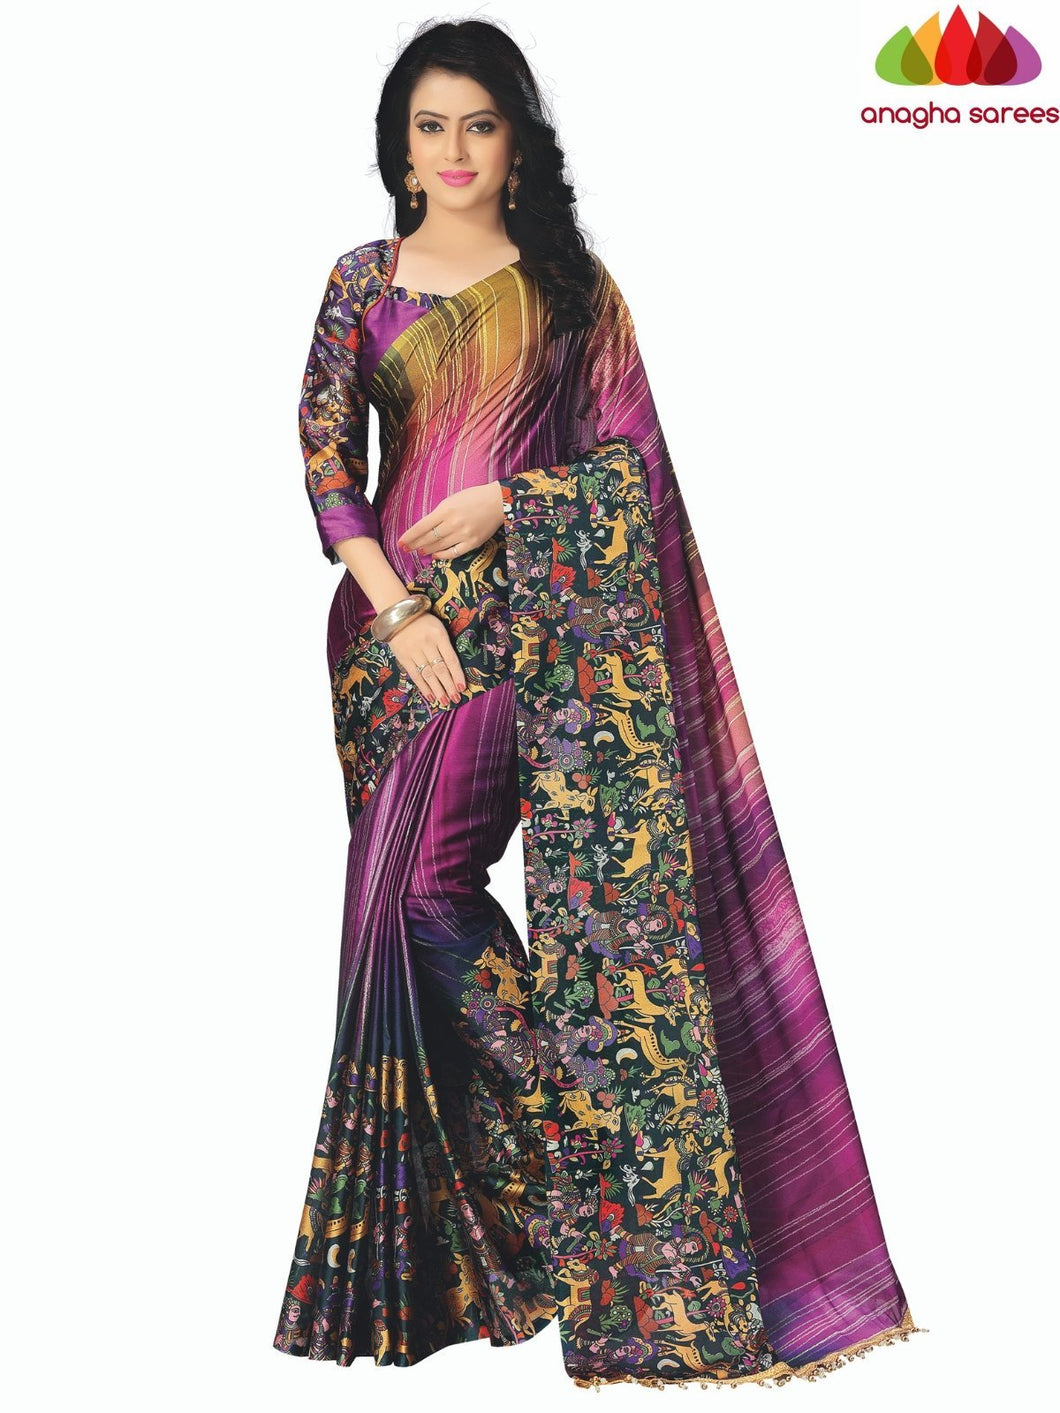 Anagha Sarees Cotton-silk Length=6.3metres, width=45 inches / Magenta/Mustard Designer Tribal Print Cotton-Silk Saree - Magenta/Mustard : ANA_K66